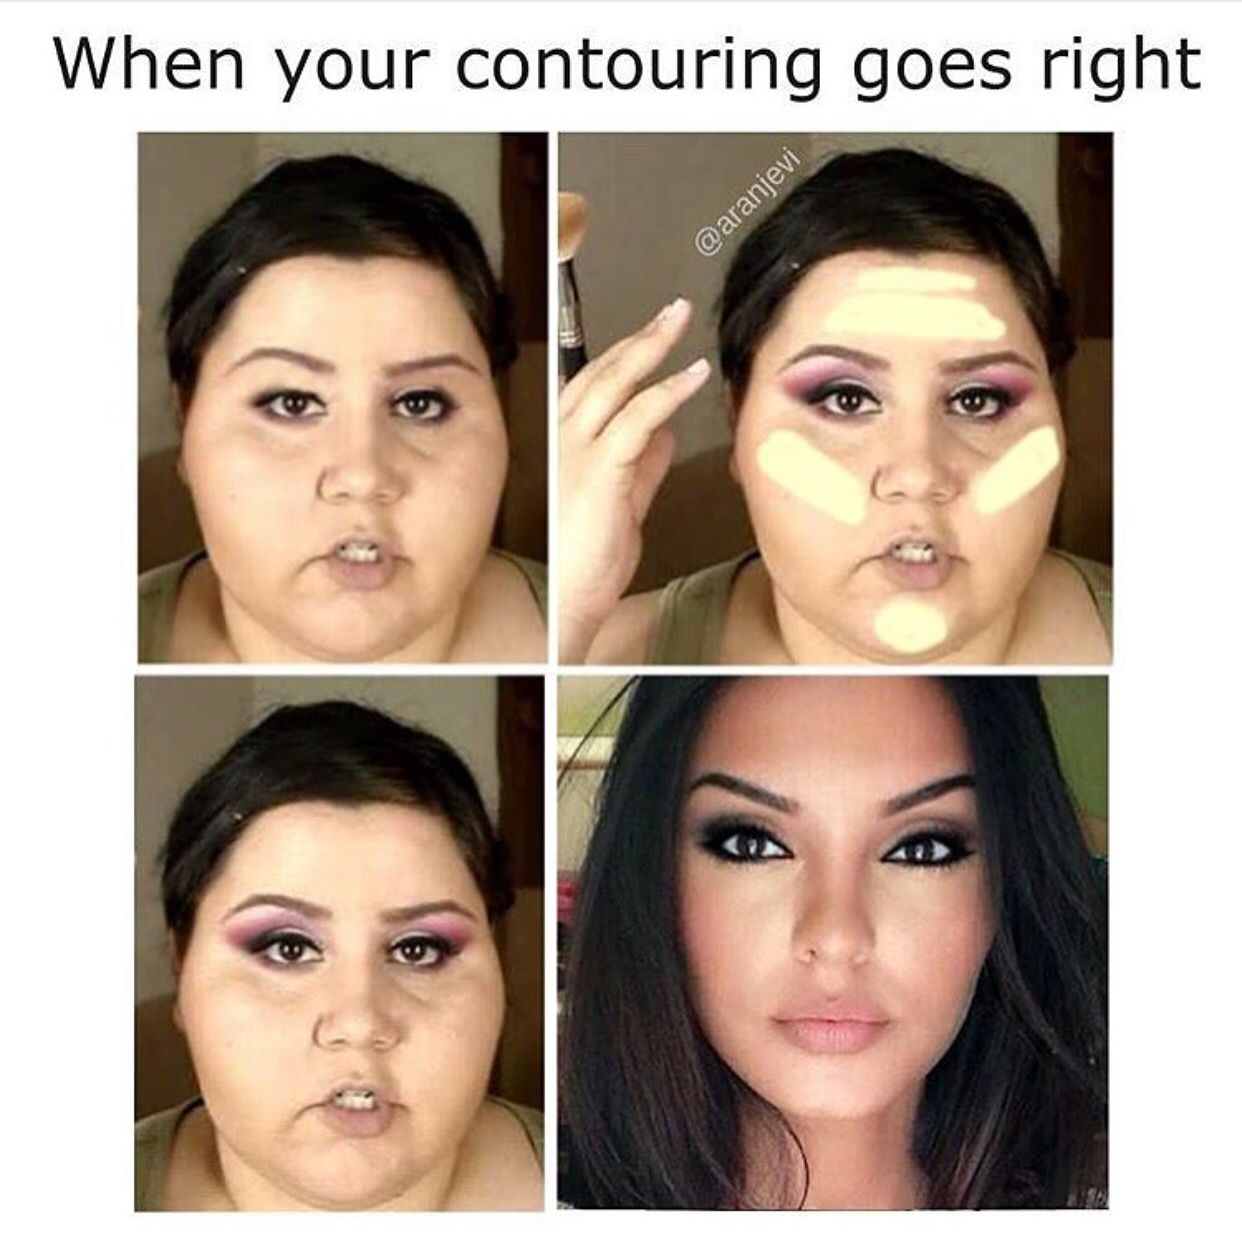 68841d0ca7b520c2a5fe348ca7fd4878 the magic of contouring! bam! loveee ! beautiful before and after